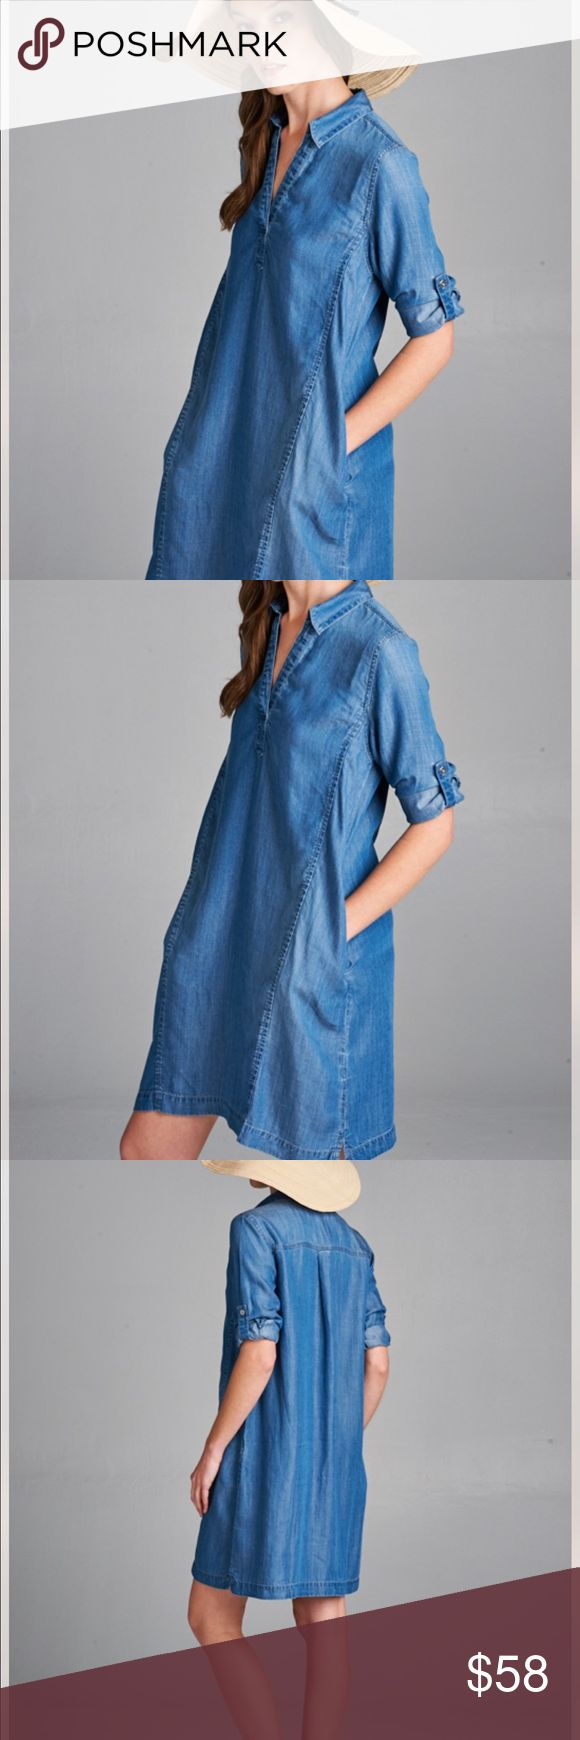 Denim Tencel Dress🇺🇸Sale Beautiful mid-wash denim tencel dress! Roll up sleeves button for versatile styling! Wear arouns town or beach! Dress up with booties or down with sandals! Garment Care: Machine Wash Cold. Sizes: Small Medium Large HipFinds Dresses Mini